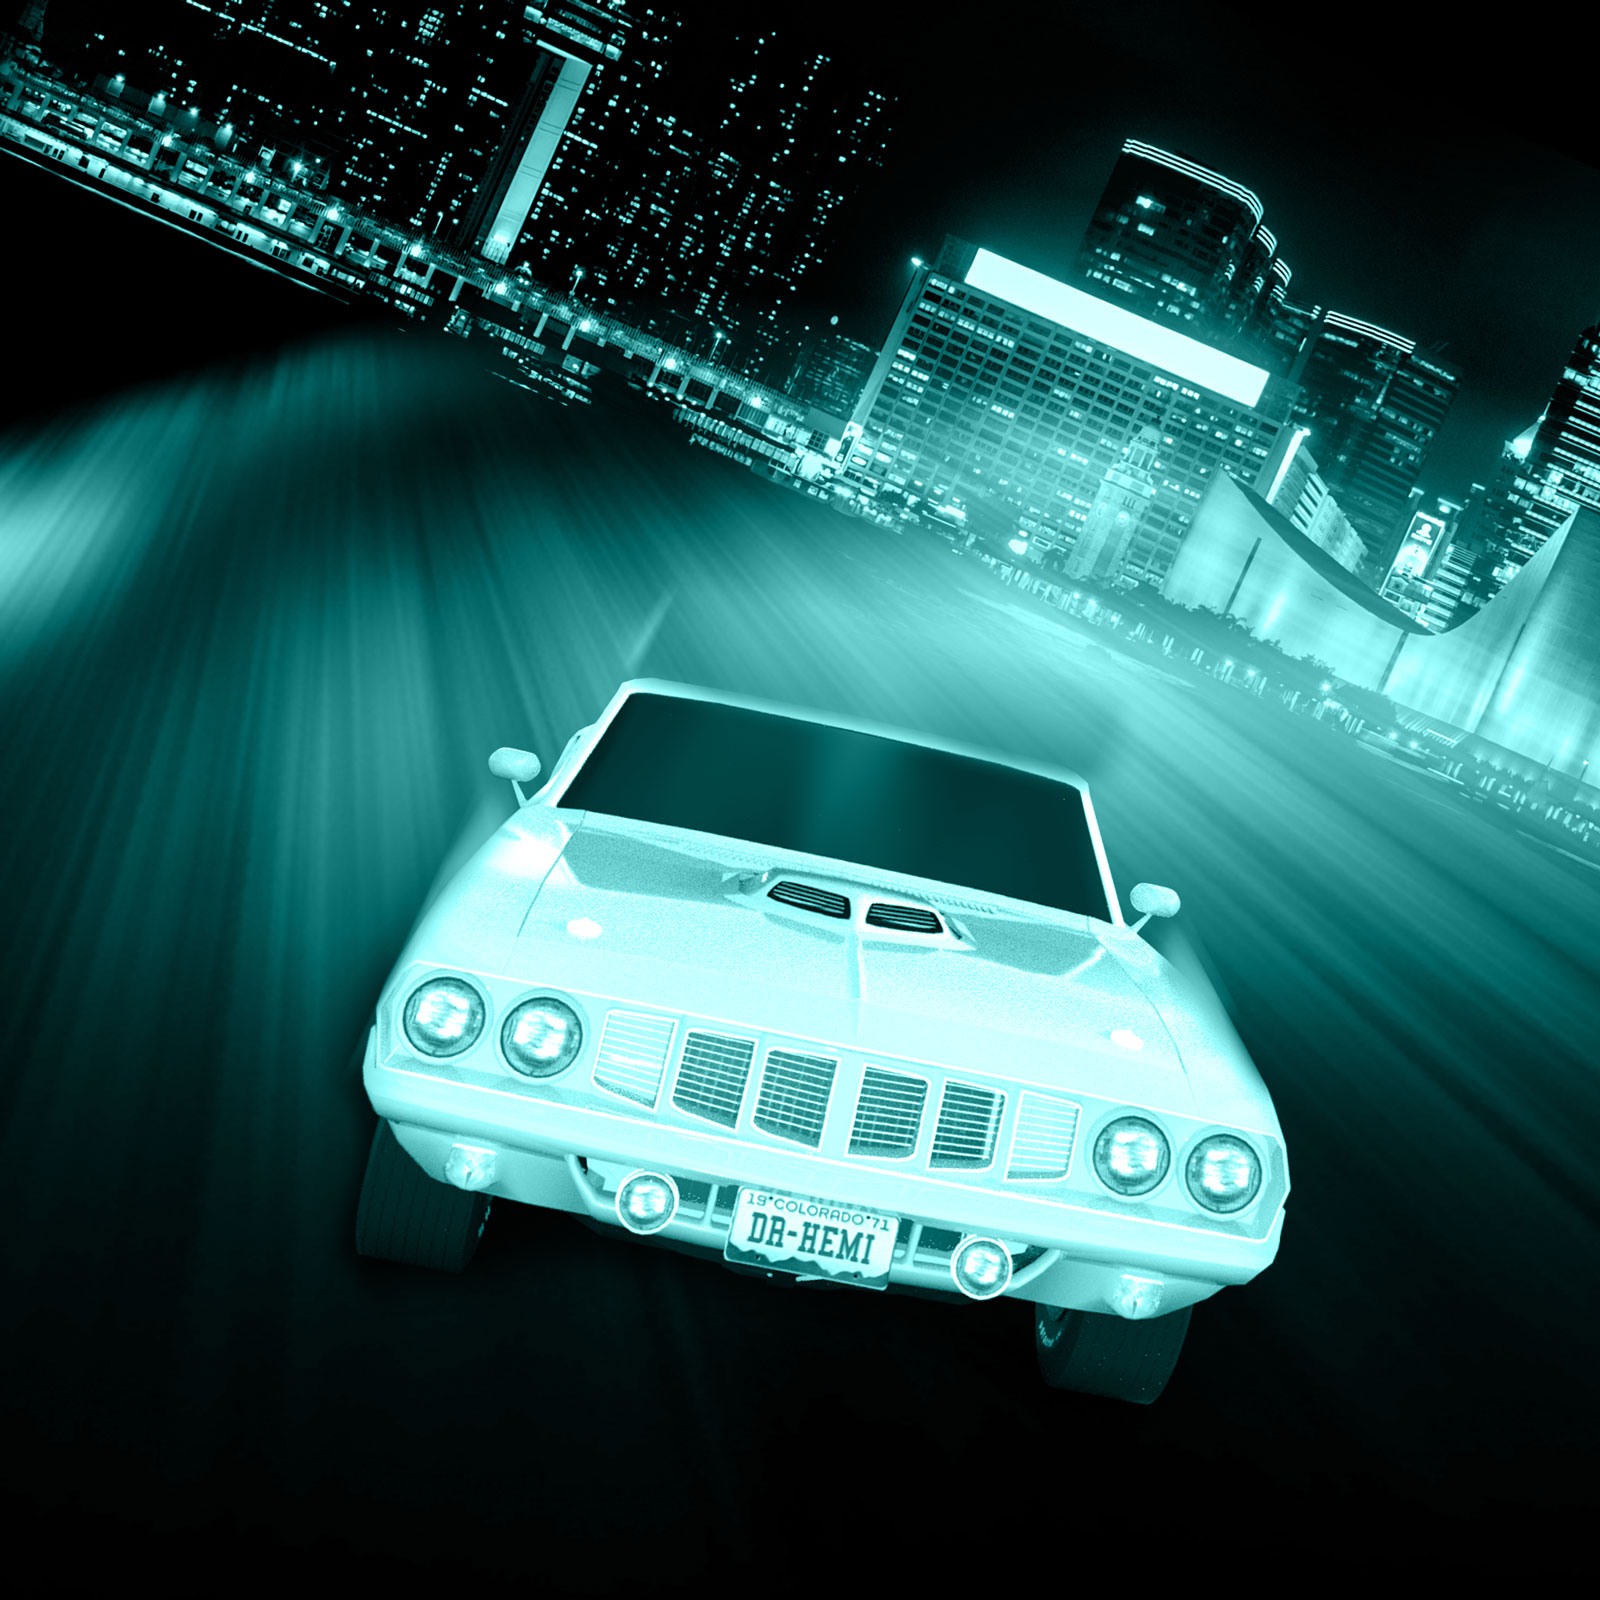 Night Car Race PS Brushes